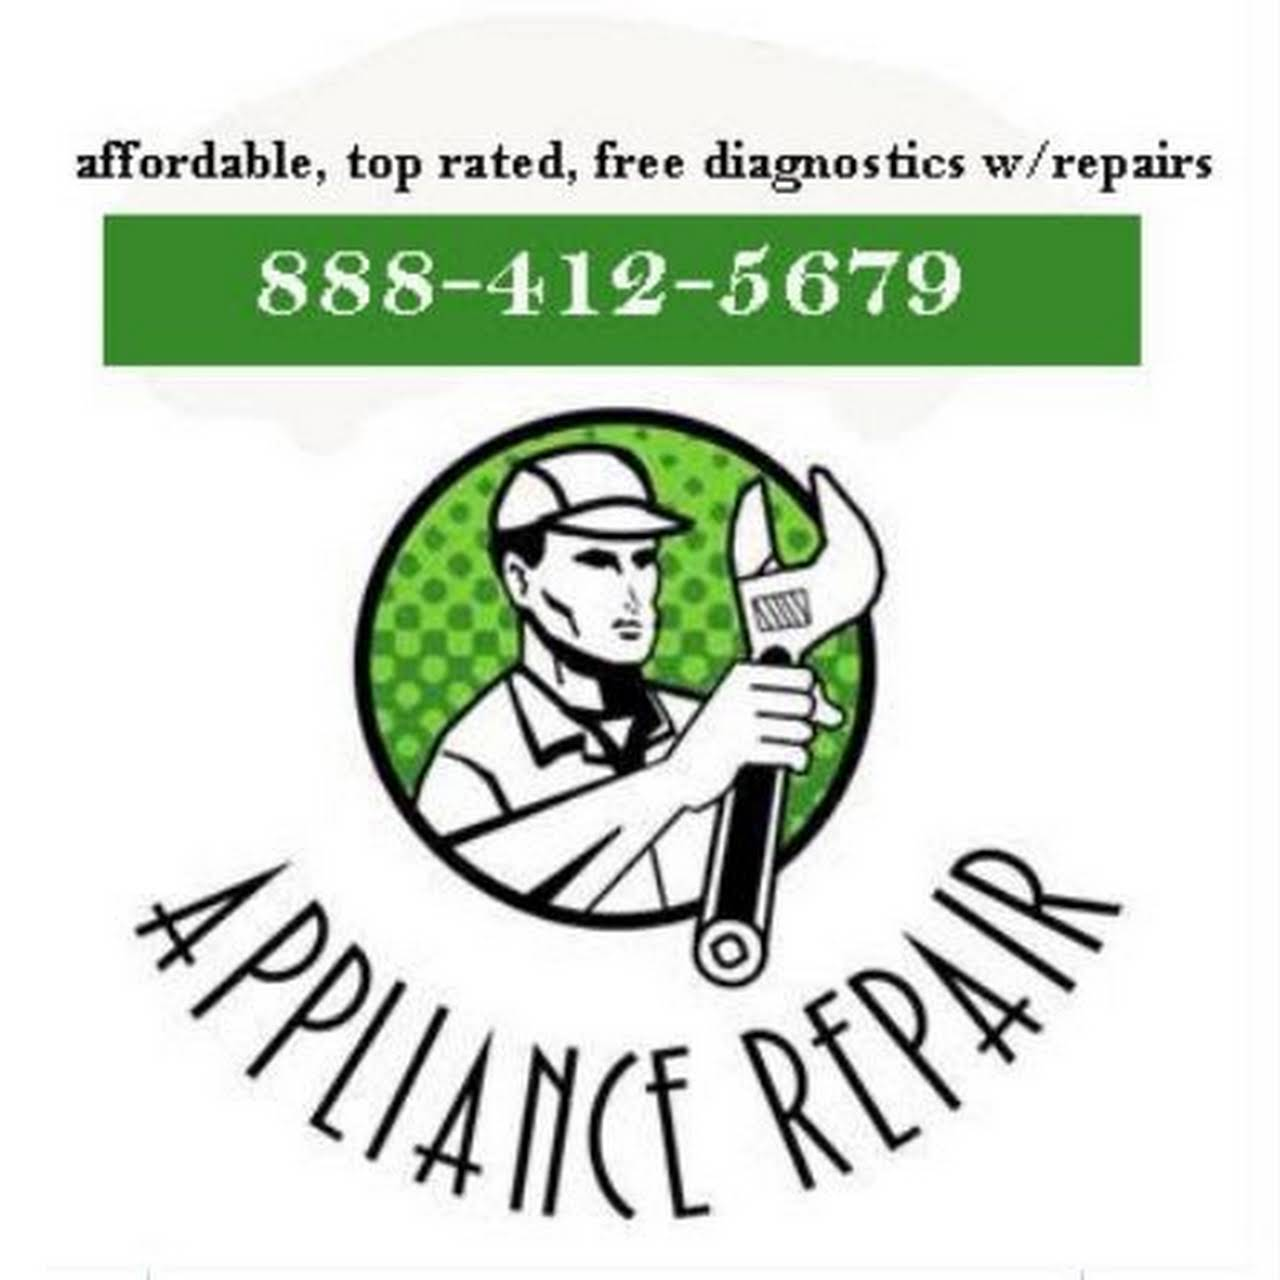 Liance Repair In Chatsworth And Surrounding Areas